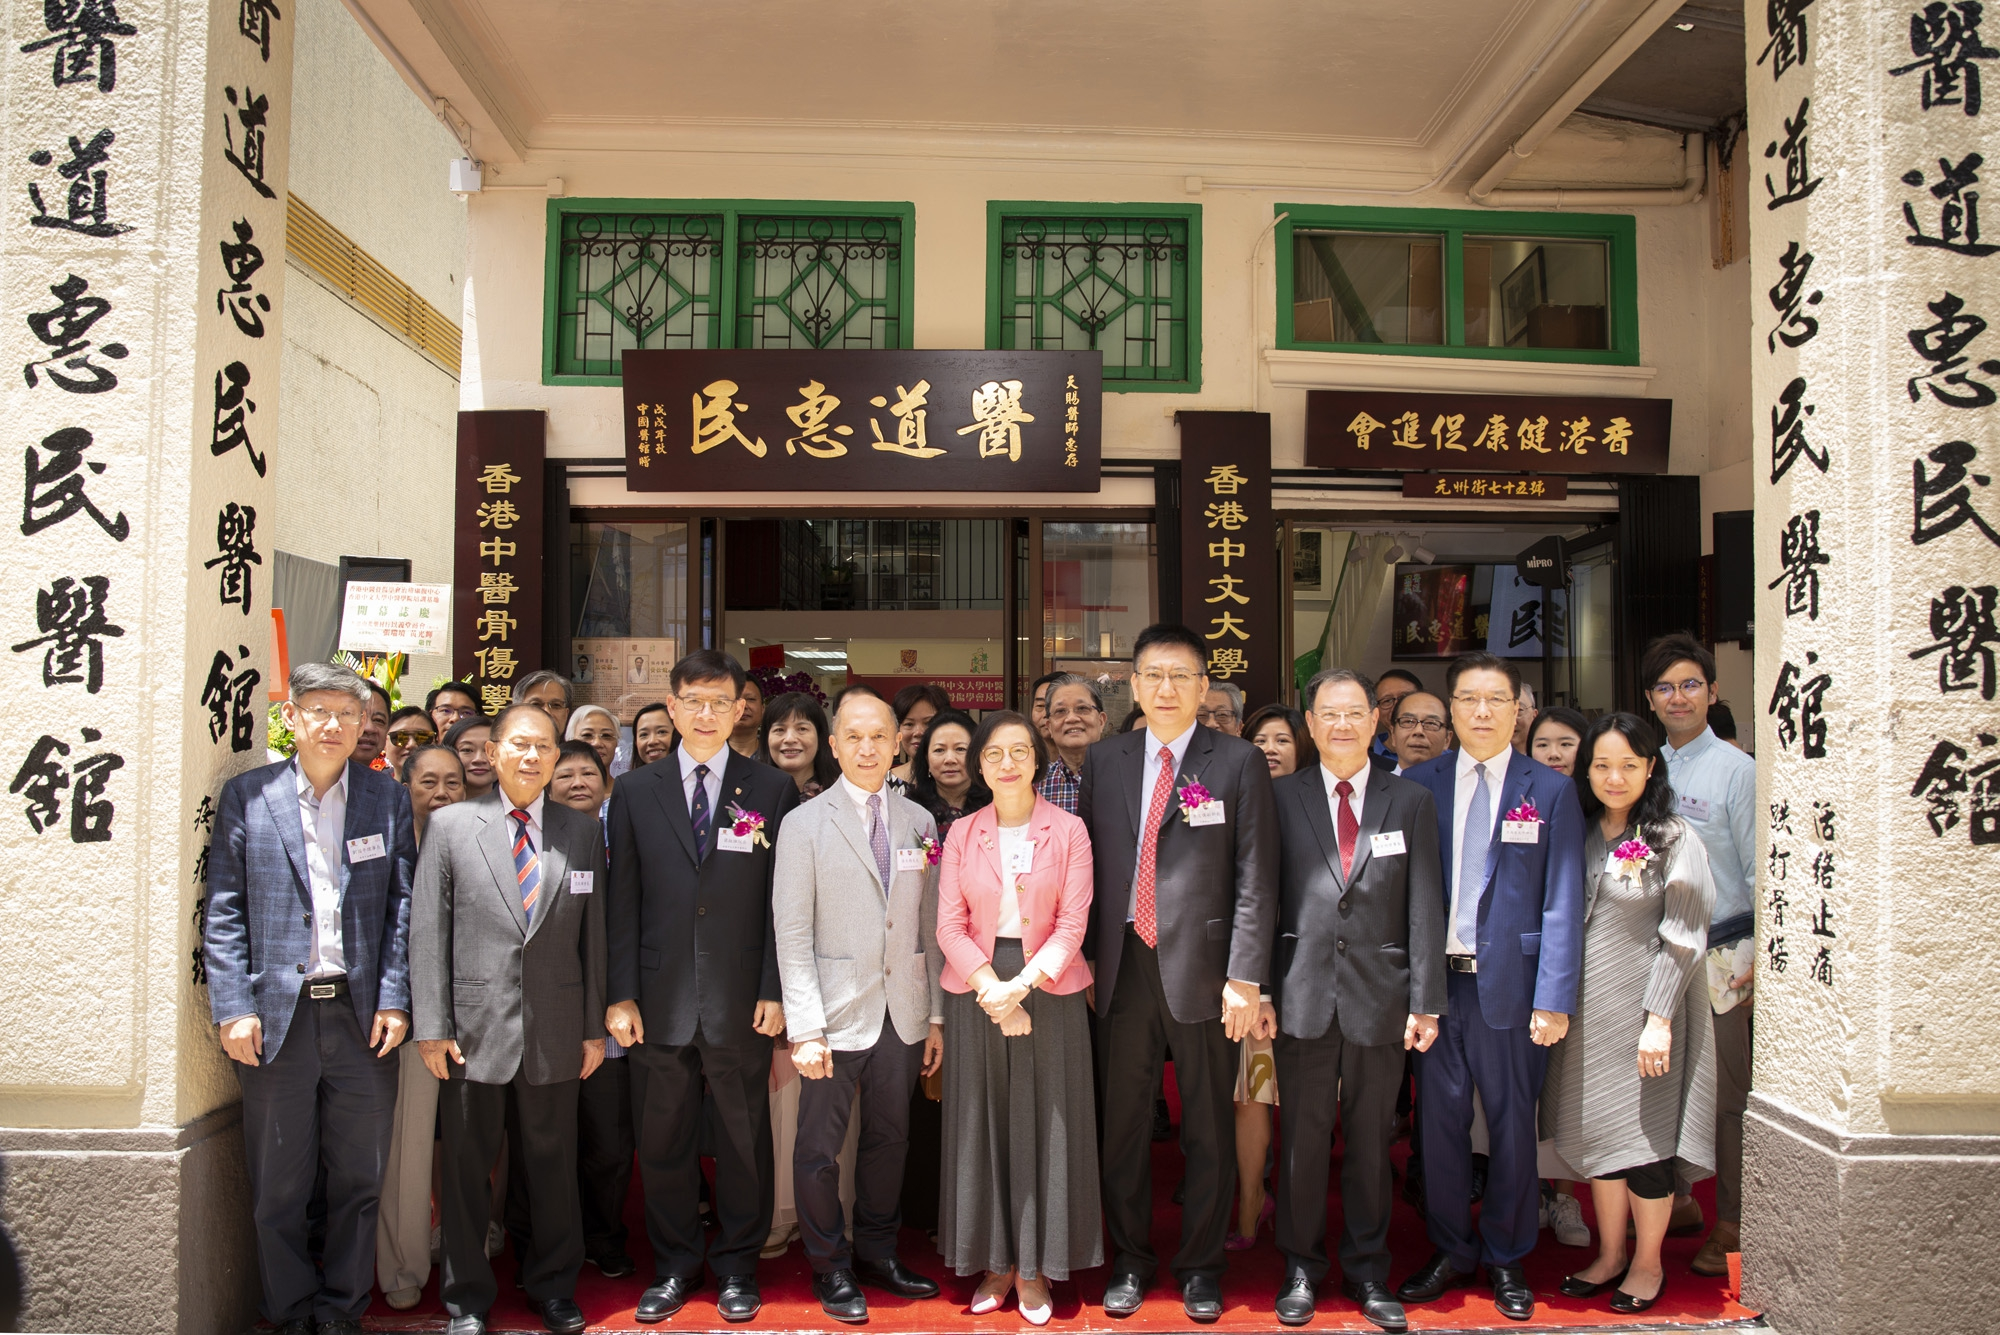 The School of Chinese Medicine at CUHK is collaborating with the Community Med Care and the Hong Kong T.C.M. Orthopaedic & Traumatic Association, to offer clinical practicum and training for Chinese Medicine students at the Community Med Care Clinic. The opening ceremony of the Clinic is held today. Officiating guests include (3rd from left, first row): Professor LEUNG Ting Hung, Director of the School of Chinese Medicine at CUHK; Mr. WONG Tin Chee, Director of the Community Med Care Clinic; Professor Sophia CHAN, Secretary for Food and Health, HKSAR Government; Mr. LI Wen Shen, Deputy Director-General of the Co-ordination Office of the Liaison Office of the Central People's Government in the HKSAR;  Professor YEUNG Cheuk Ming, Chairman of the Hong Kong T.C.M. Orthopaedic & Traumatic Association; Mr. Tommy LI, Deputy, National People's Congress of the People's Republic of China; and Dr. Christine Wang WONG, Assistant Director of Health (Traditional Chinese Medicine), Department of Health, HKSAR Government.